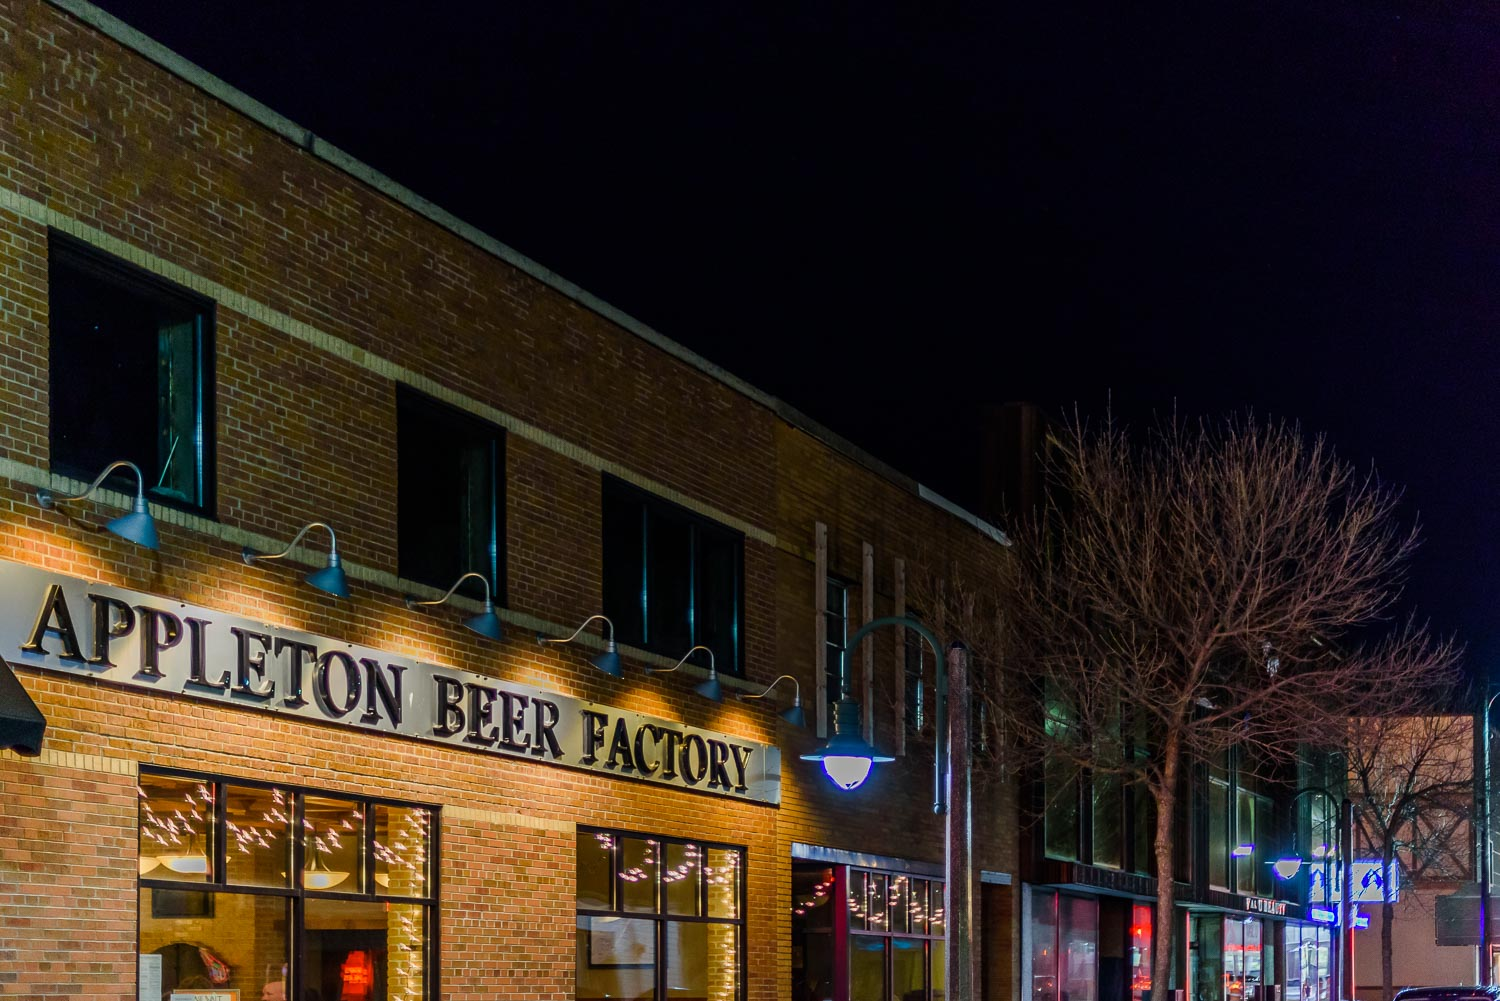 Commercial_Photography_Wisconsin-20180312-17.jpg